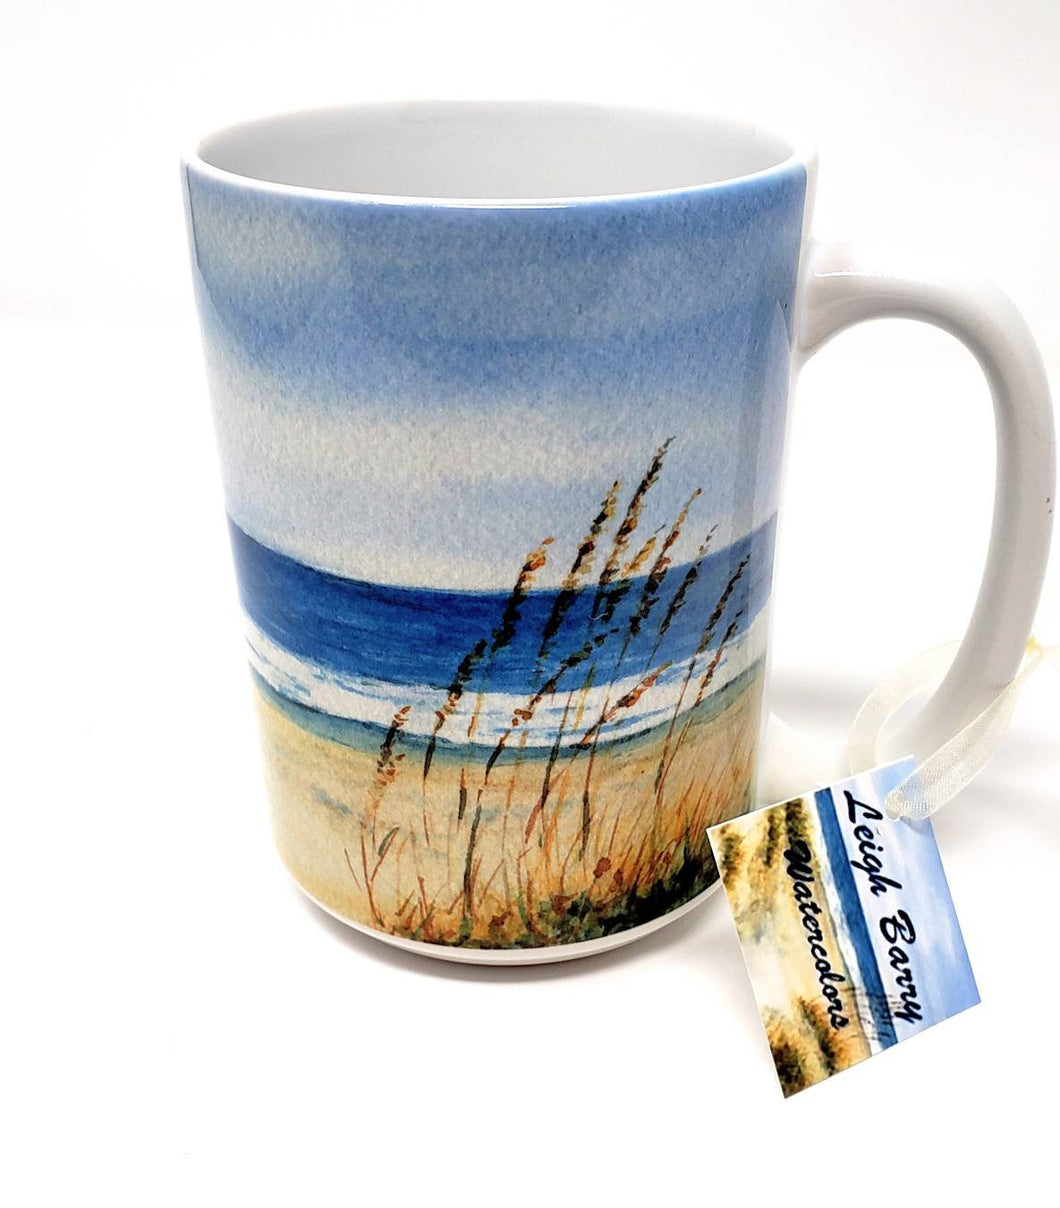 Beach Mug Beach Painting Coffee Cup Latte Mug Camp Mug Ocean Painting Beach Decor Beach Gift beach house gift seashore art ocean watercolor